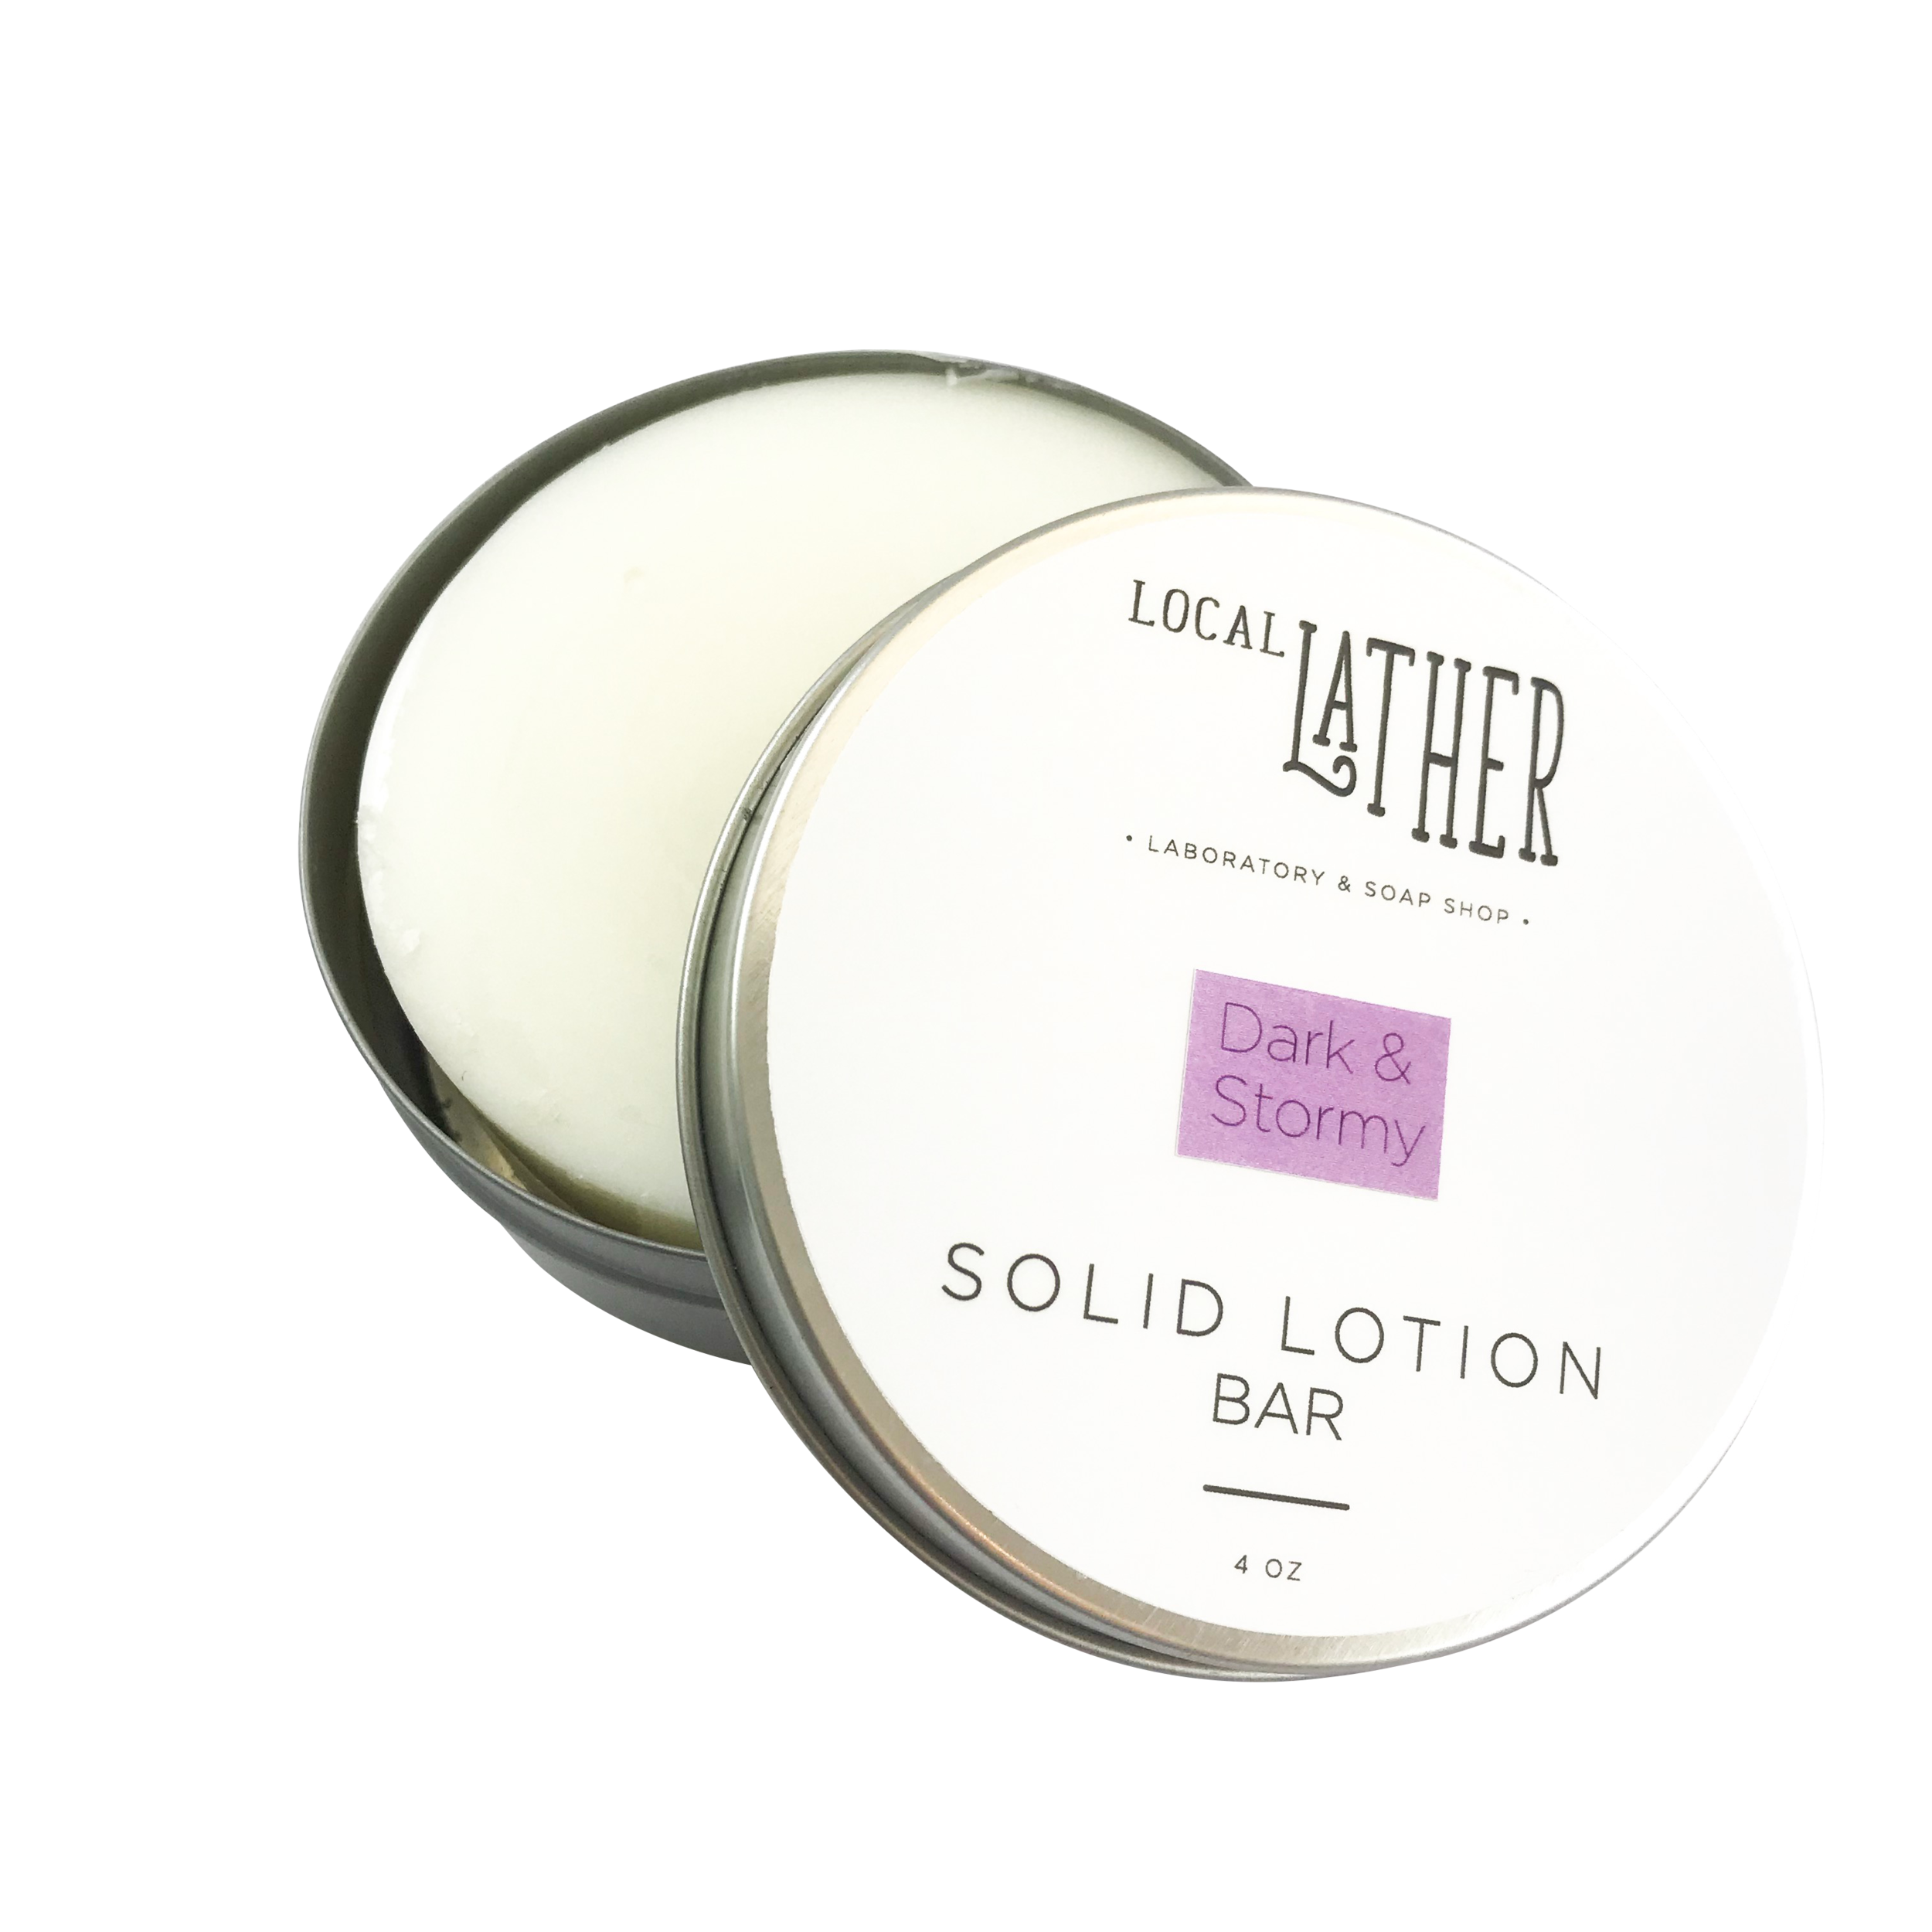 DARK & STORMY LOTION BAR — LOCAL LATHER SOAP SHOP